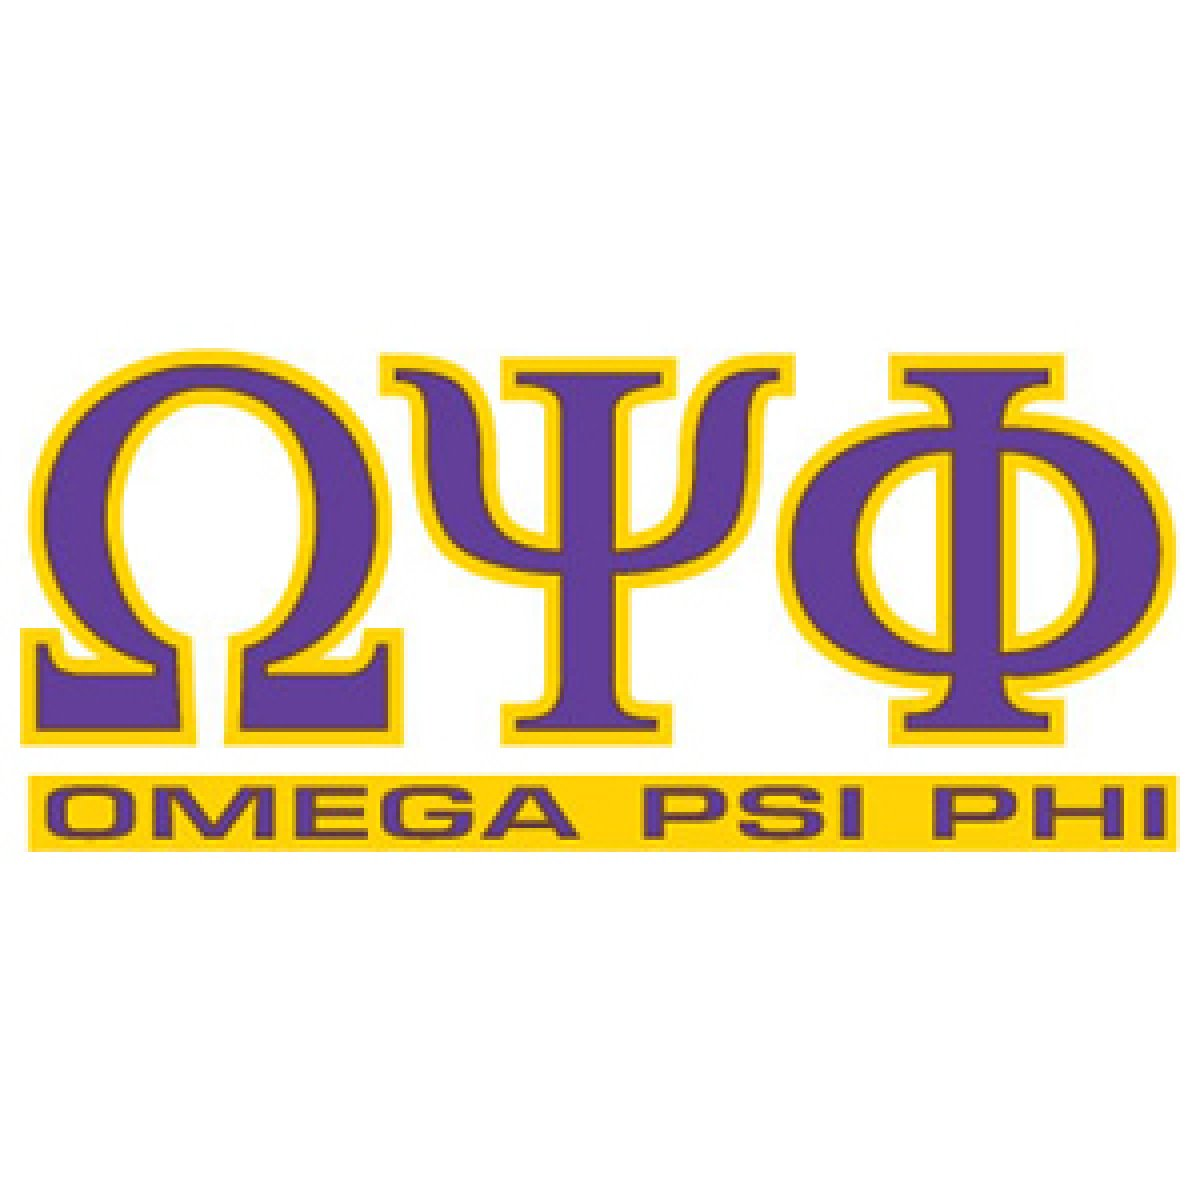 Here is the symbol of Omega Psi Phi that was created at the first meeting of Omega Psi Phi on November 11, 1911.